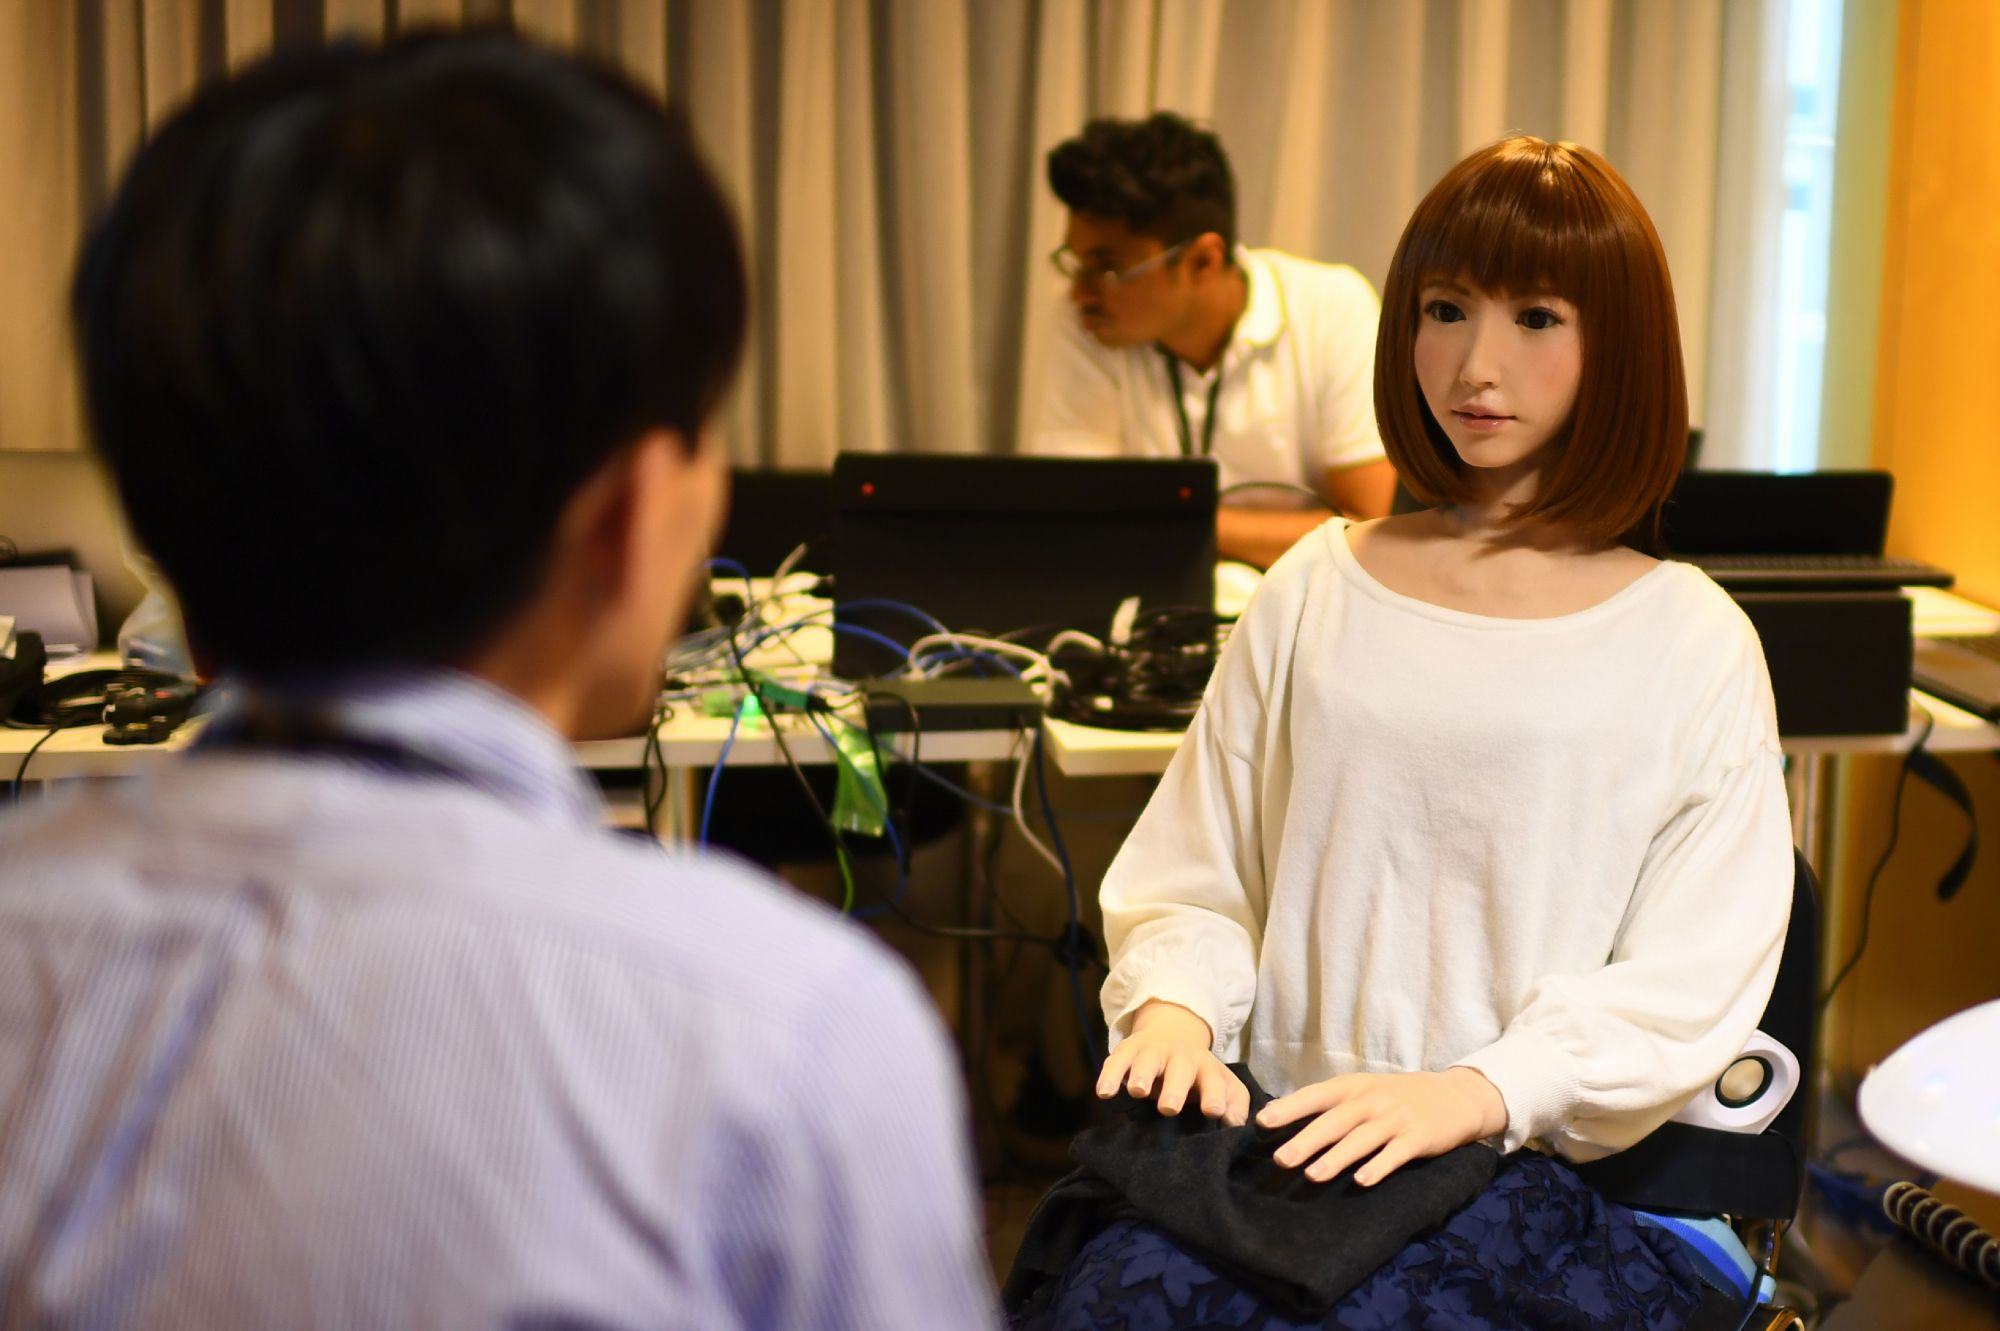 robot called Erica (R), created by Japan's Hiroshi Ishiguro Laboratories, conducts a job interview during its presentation at the IROS 2018 International Conference on Intelligent Robots on October 5, 2018 in Madrid.